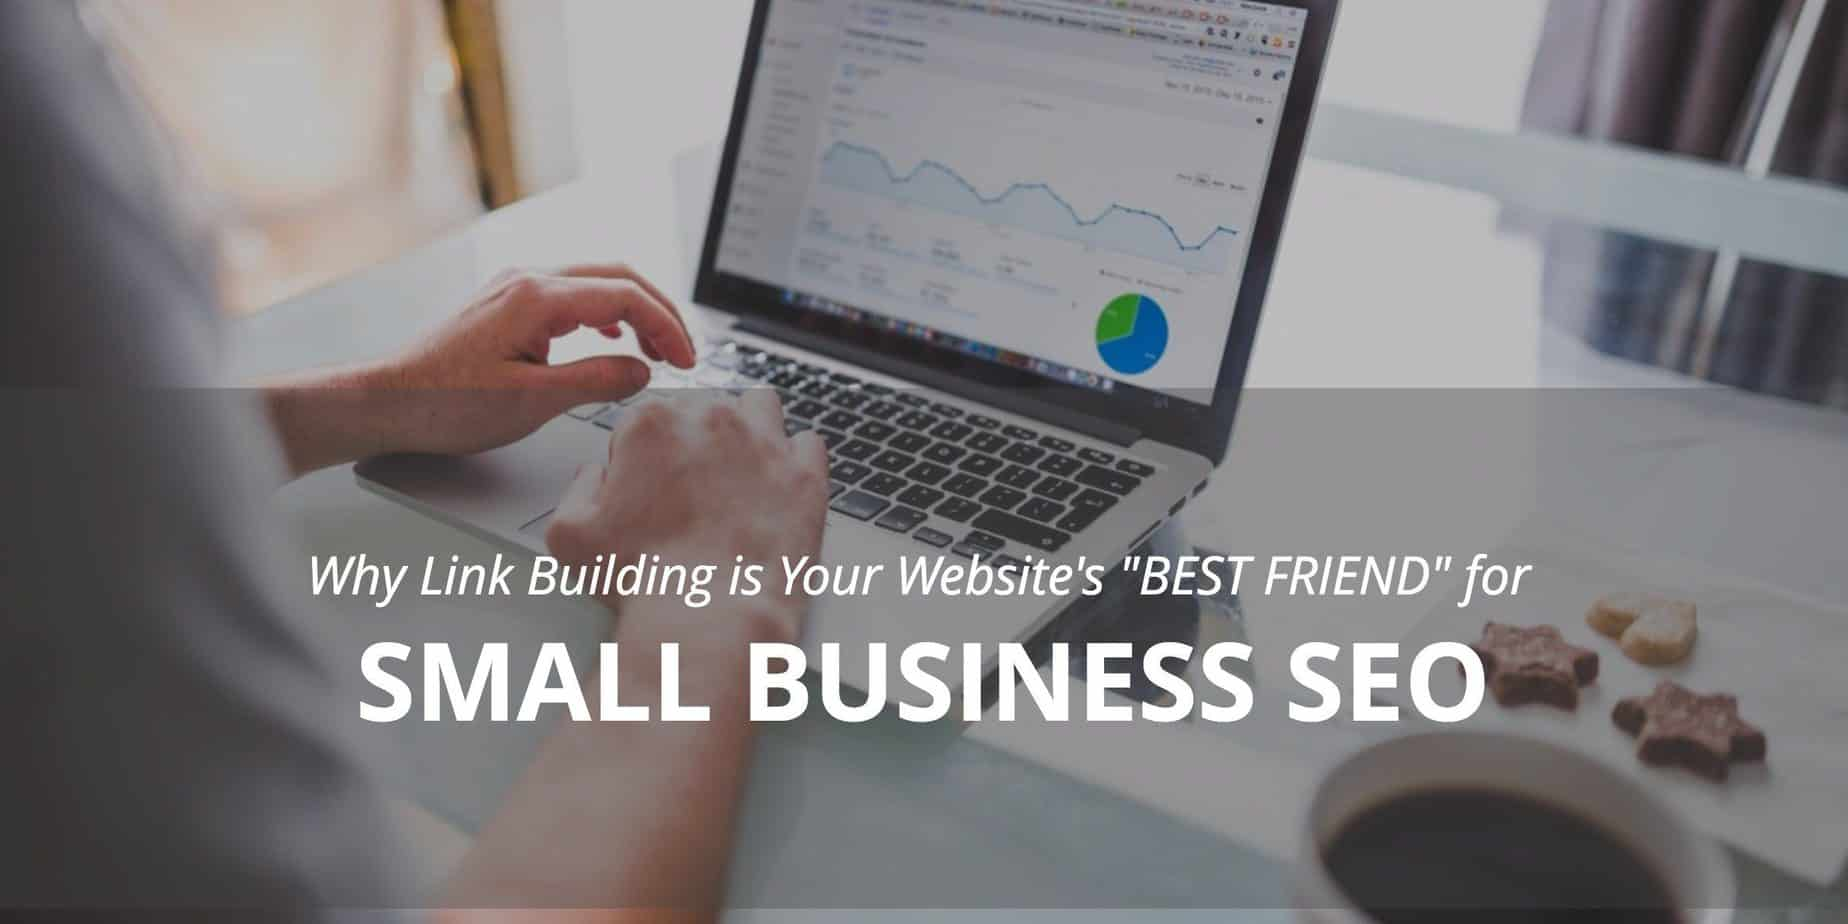 Link Building for Small Business SEO